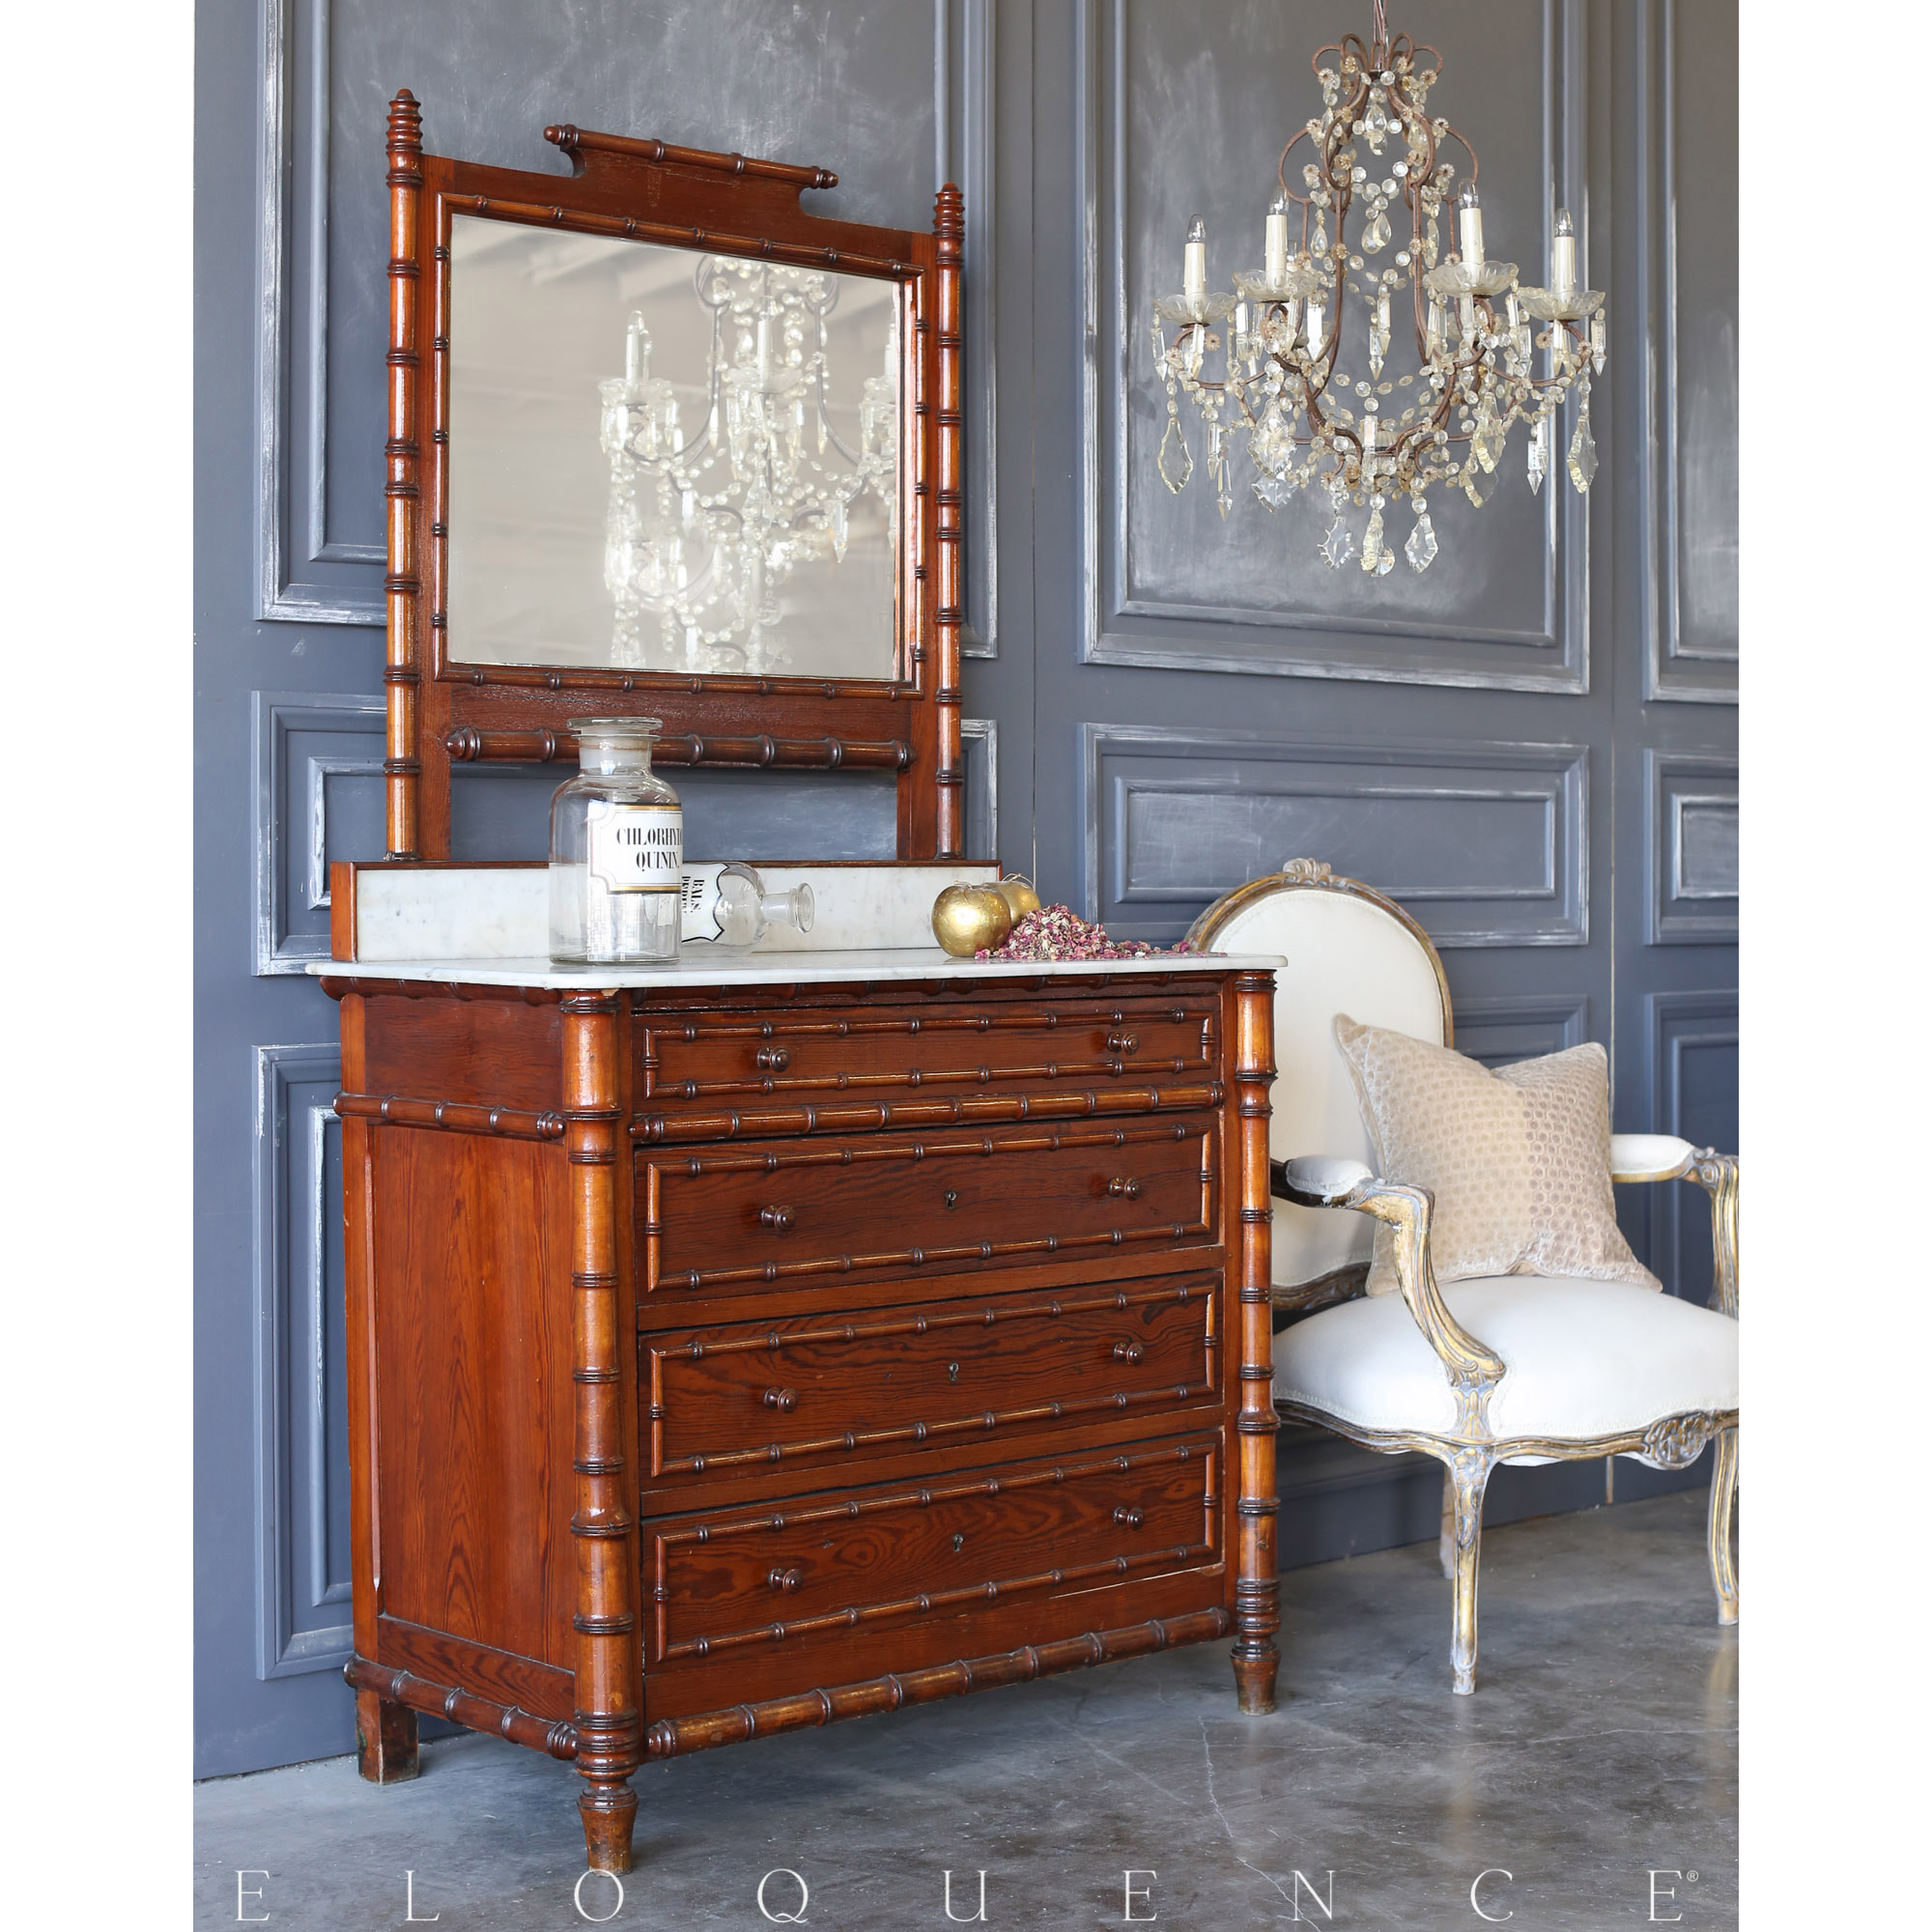 Eloquence® Vintage Bamboo Vanity with Marble Top: 1920